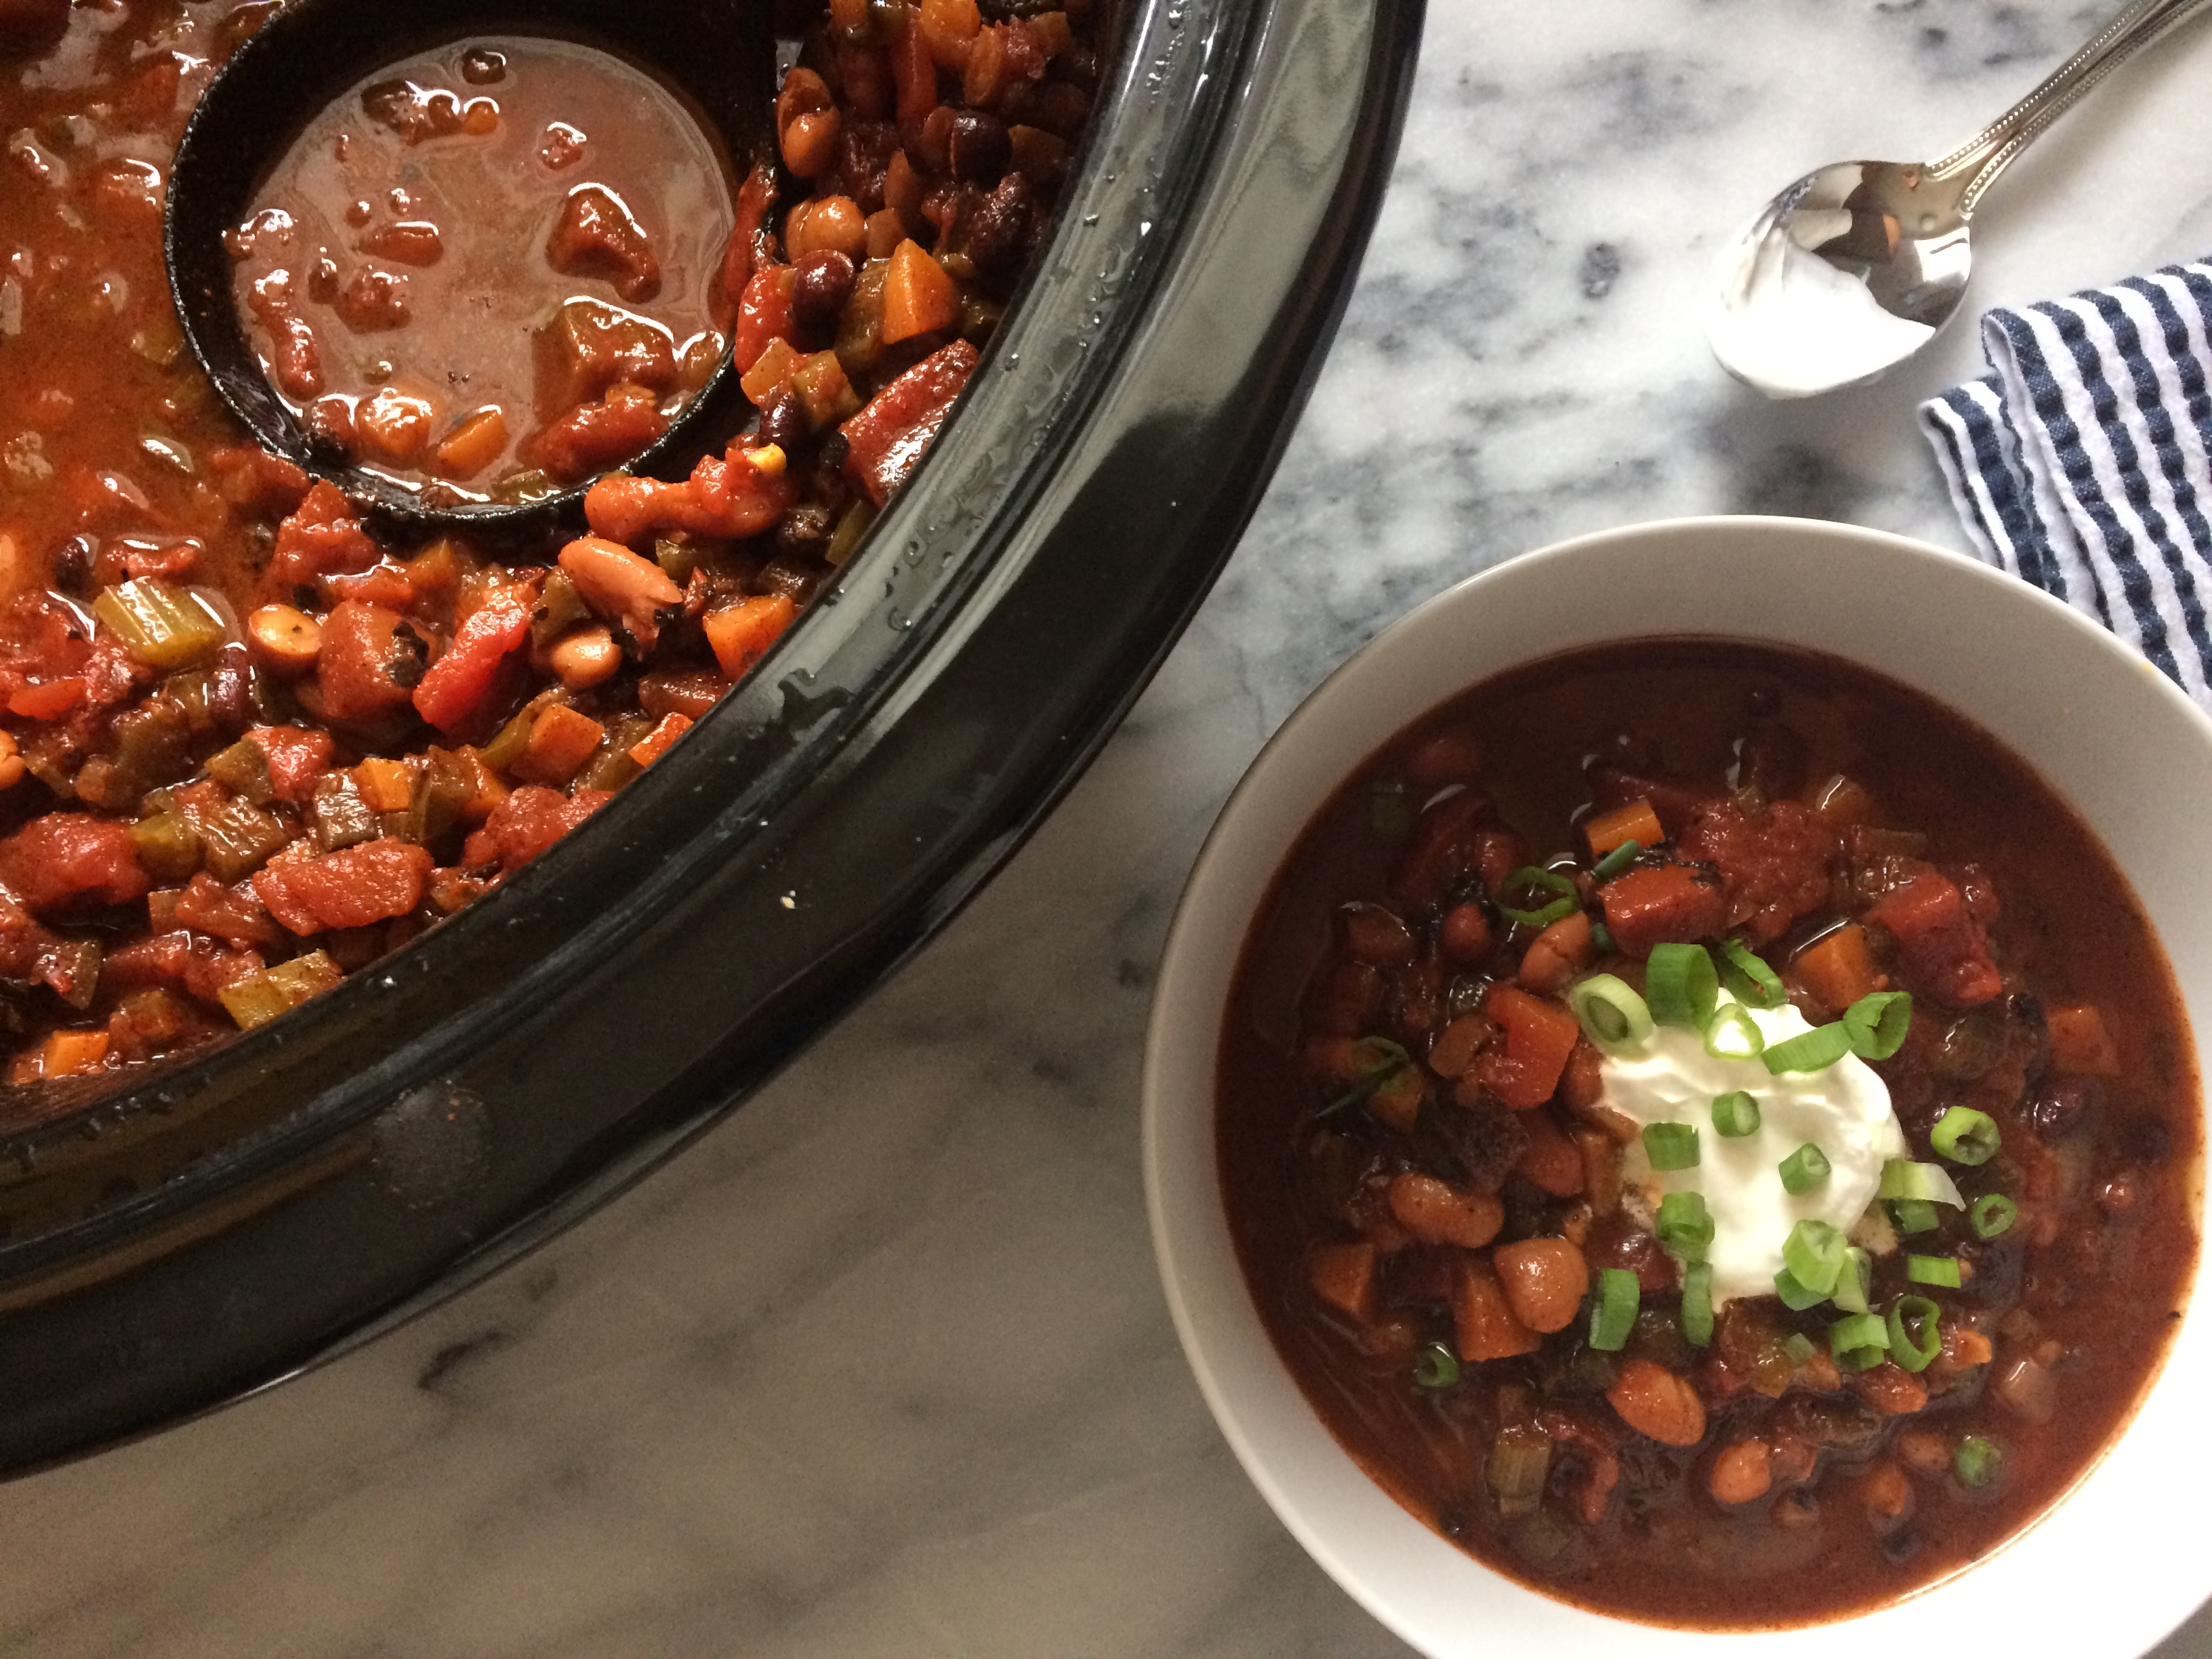 Vegetarian chili with sour cream and green onions